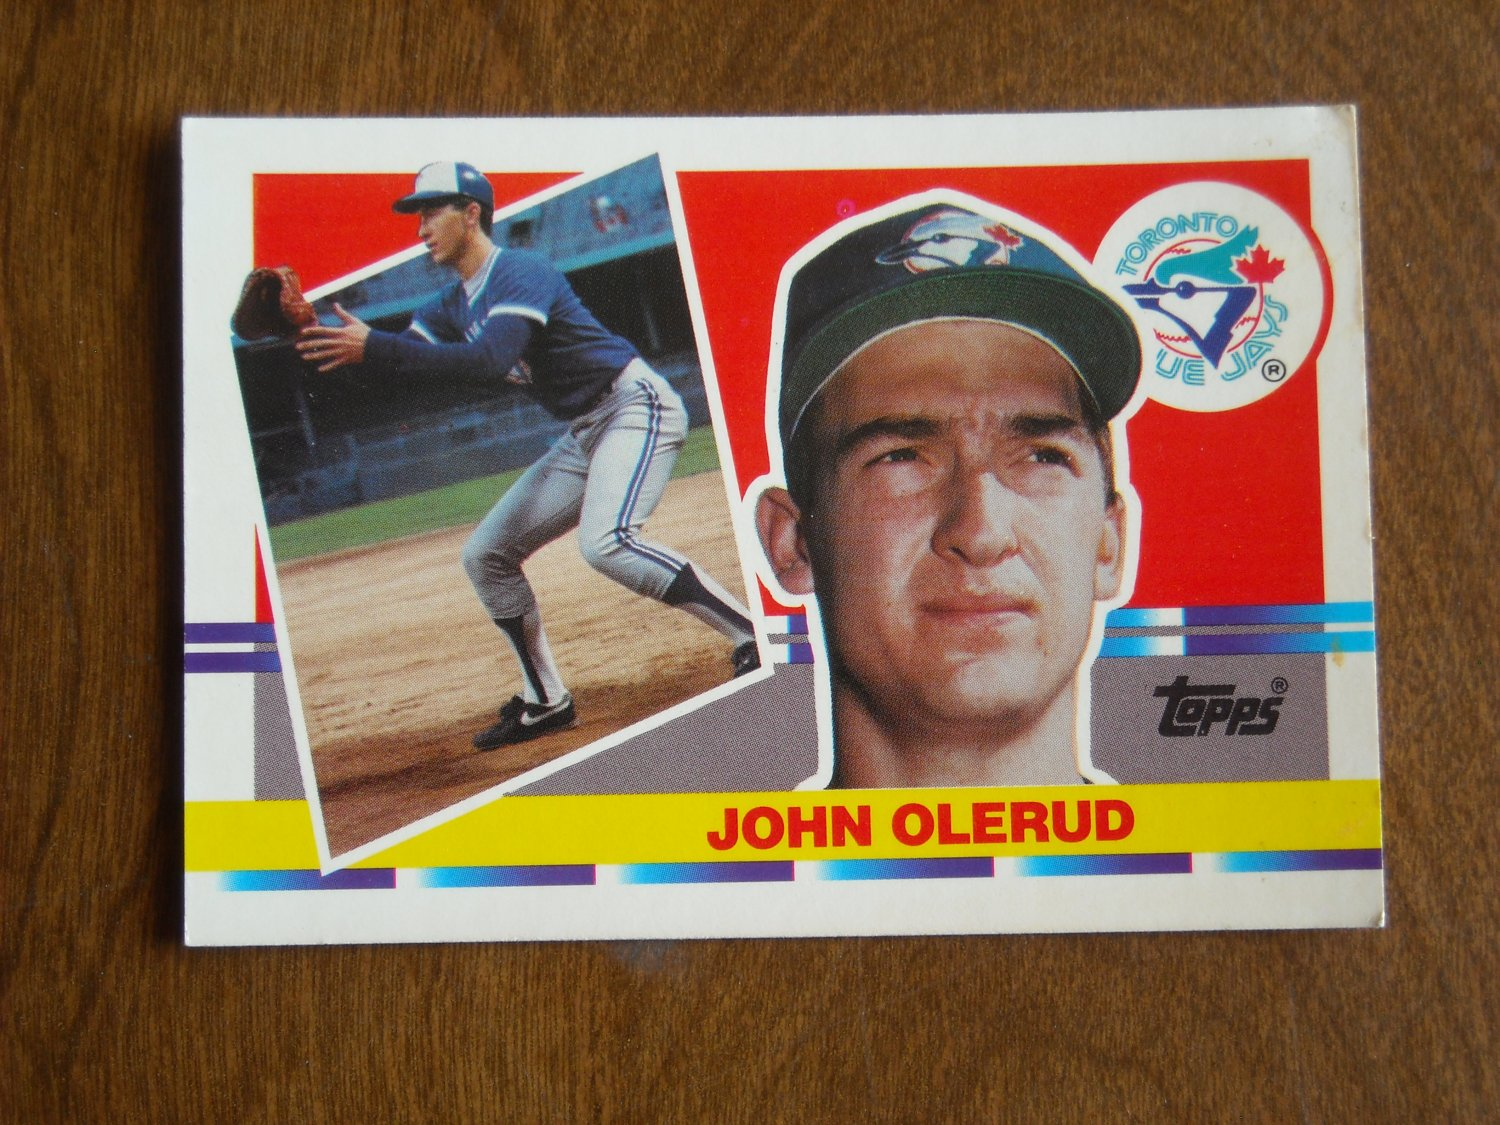 John Olerud Toronto Blue Jays dh-1b Card No 199 - 1990 Topps Baseball Card